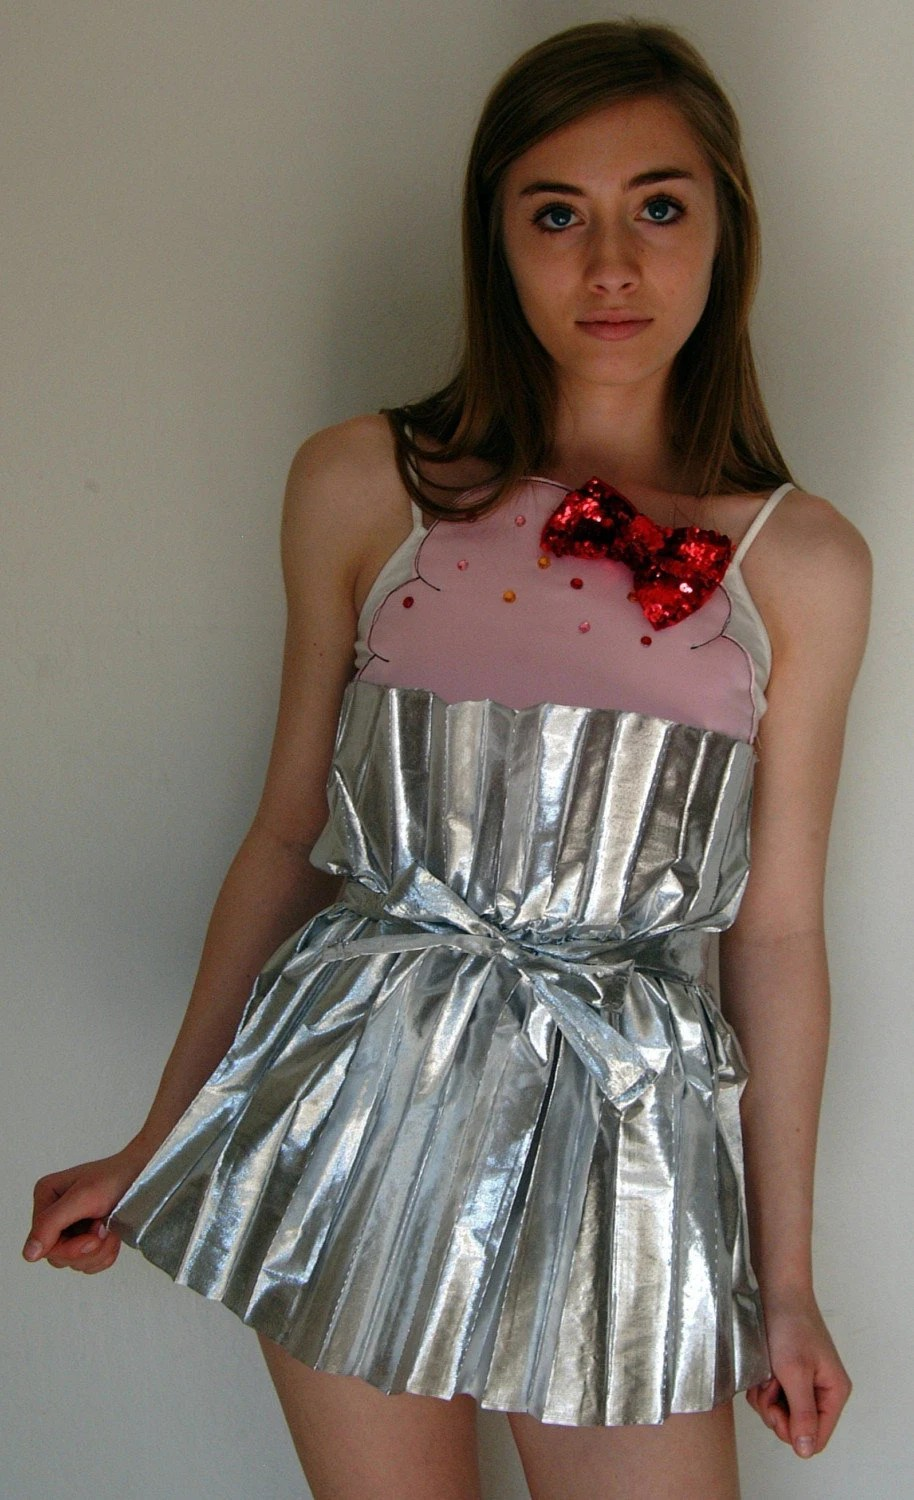 Cupcake DRESS with sprinkles and a cherry on TOP